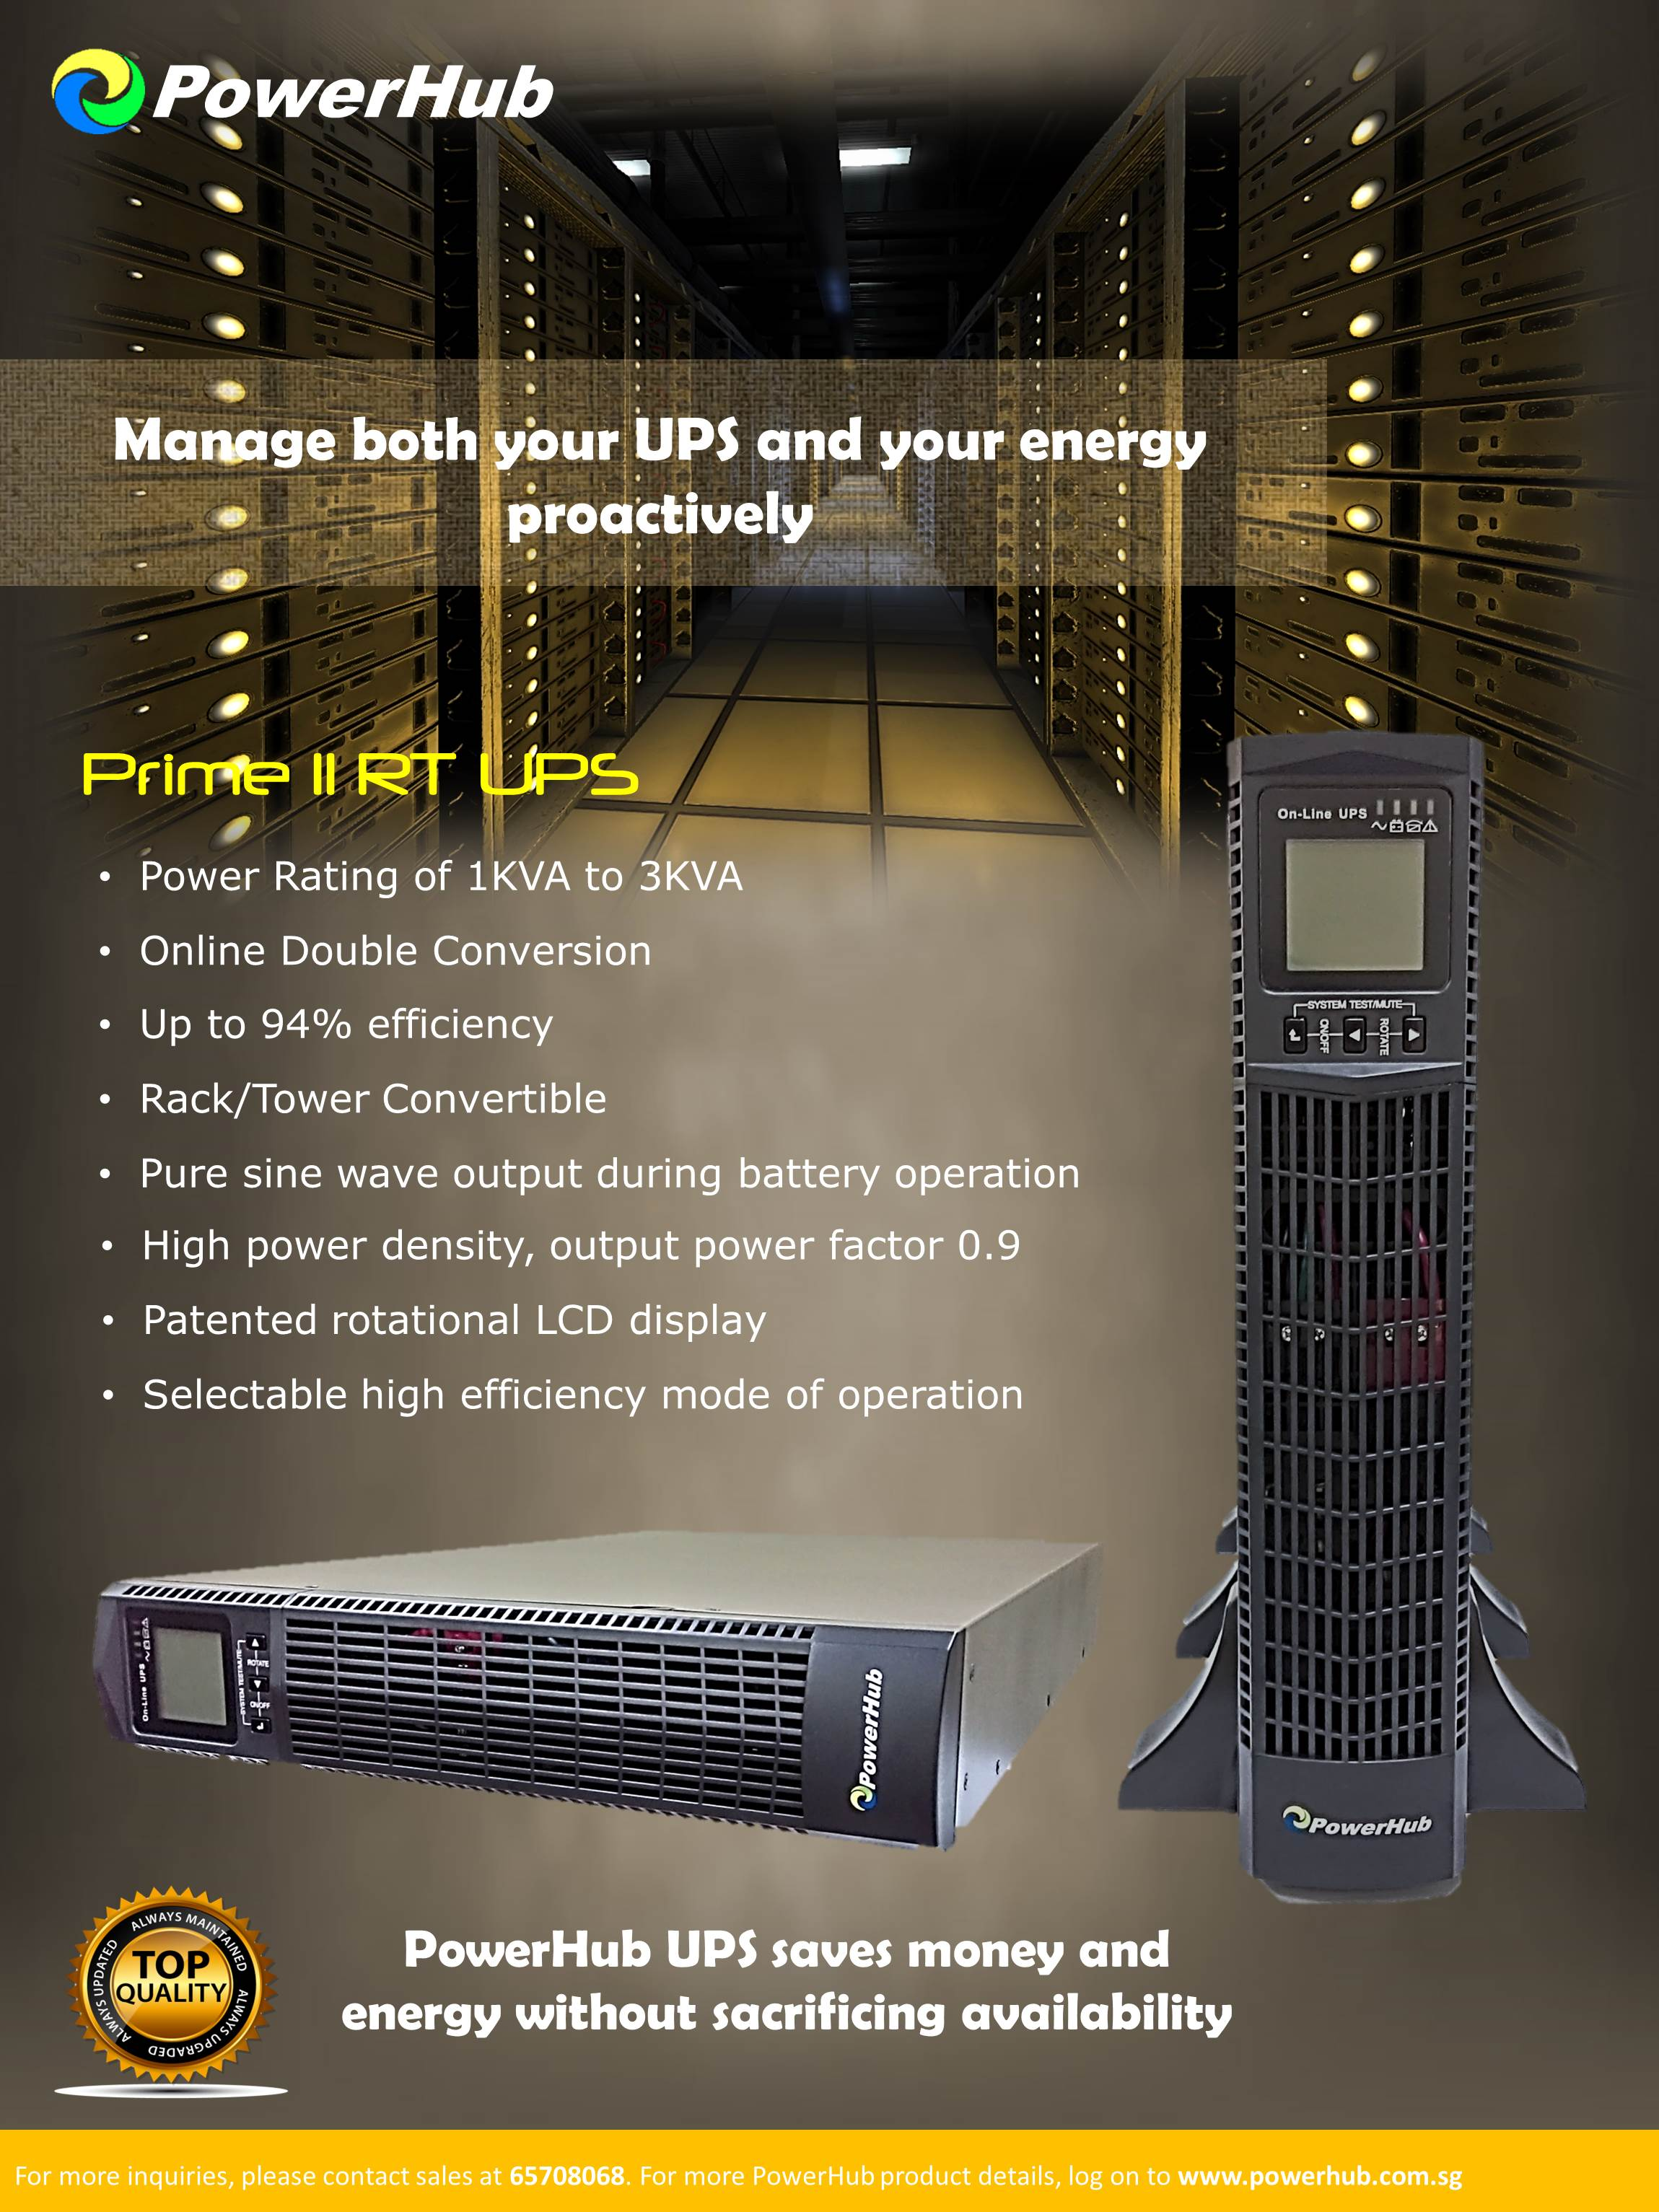 PRIME II RT UPS Rack/Tower